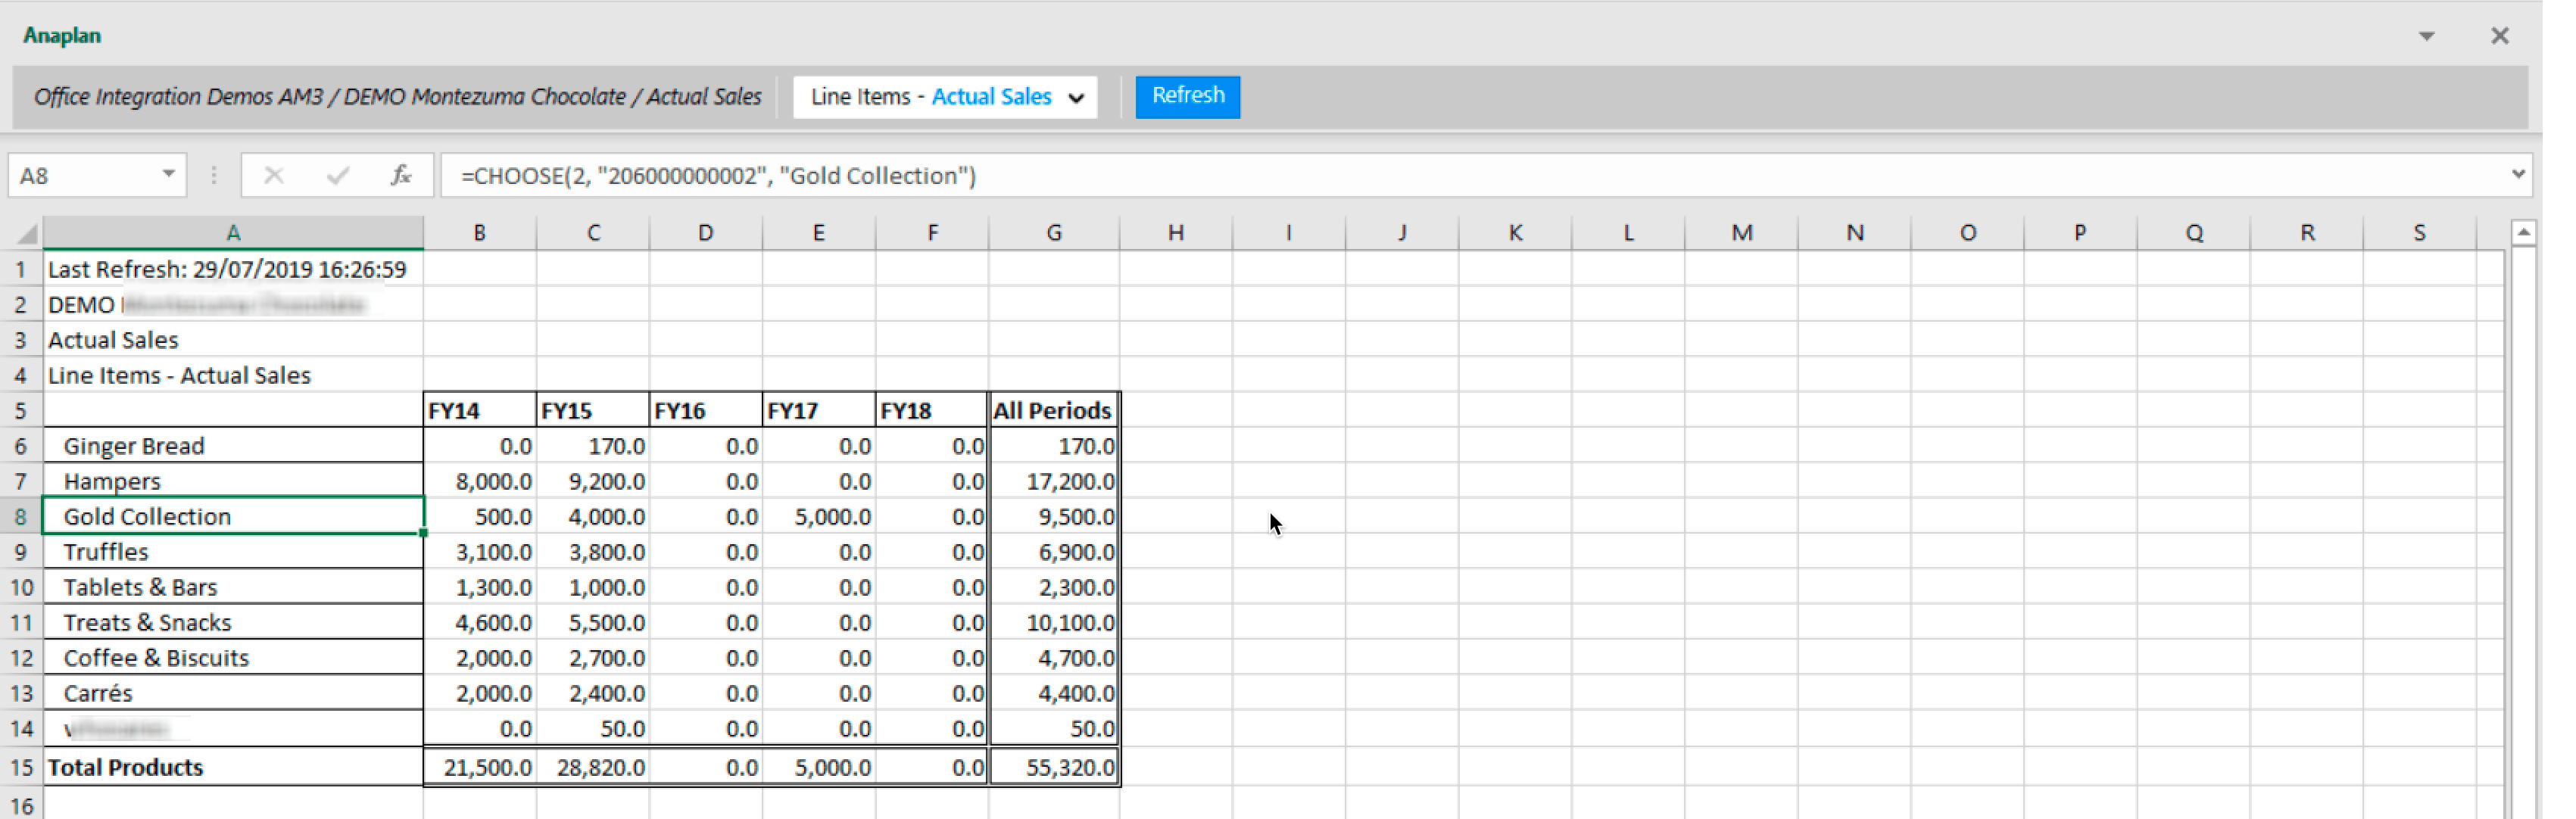 Rename Columns And Rows In A Worksheet